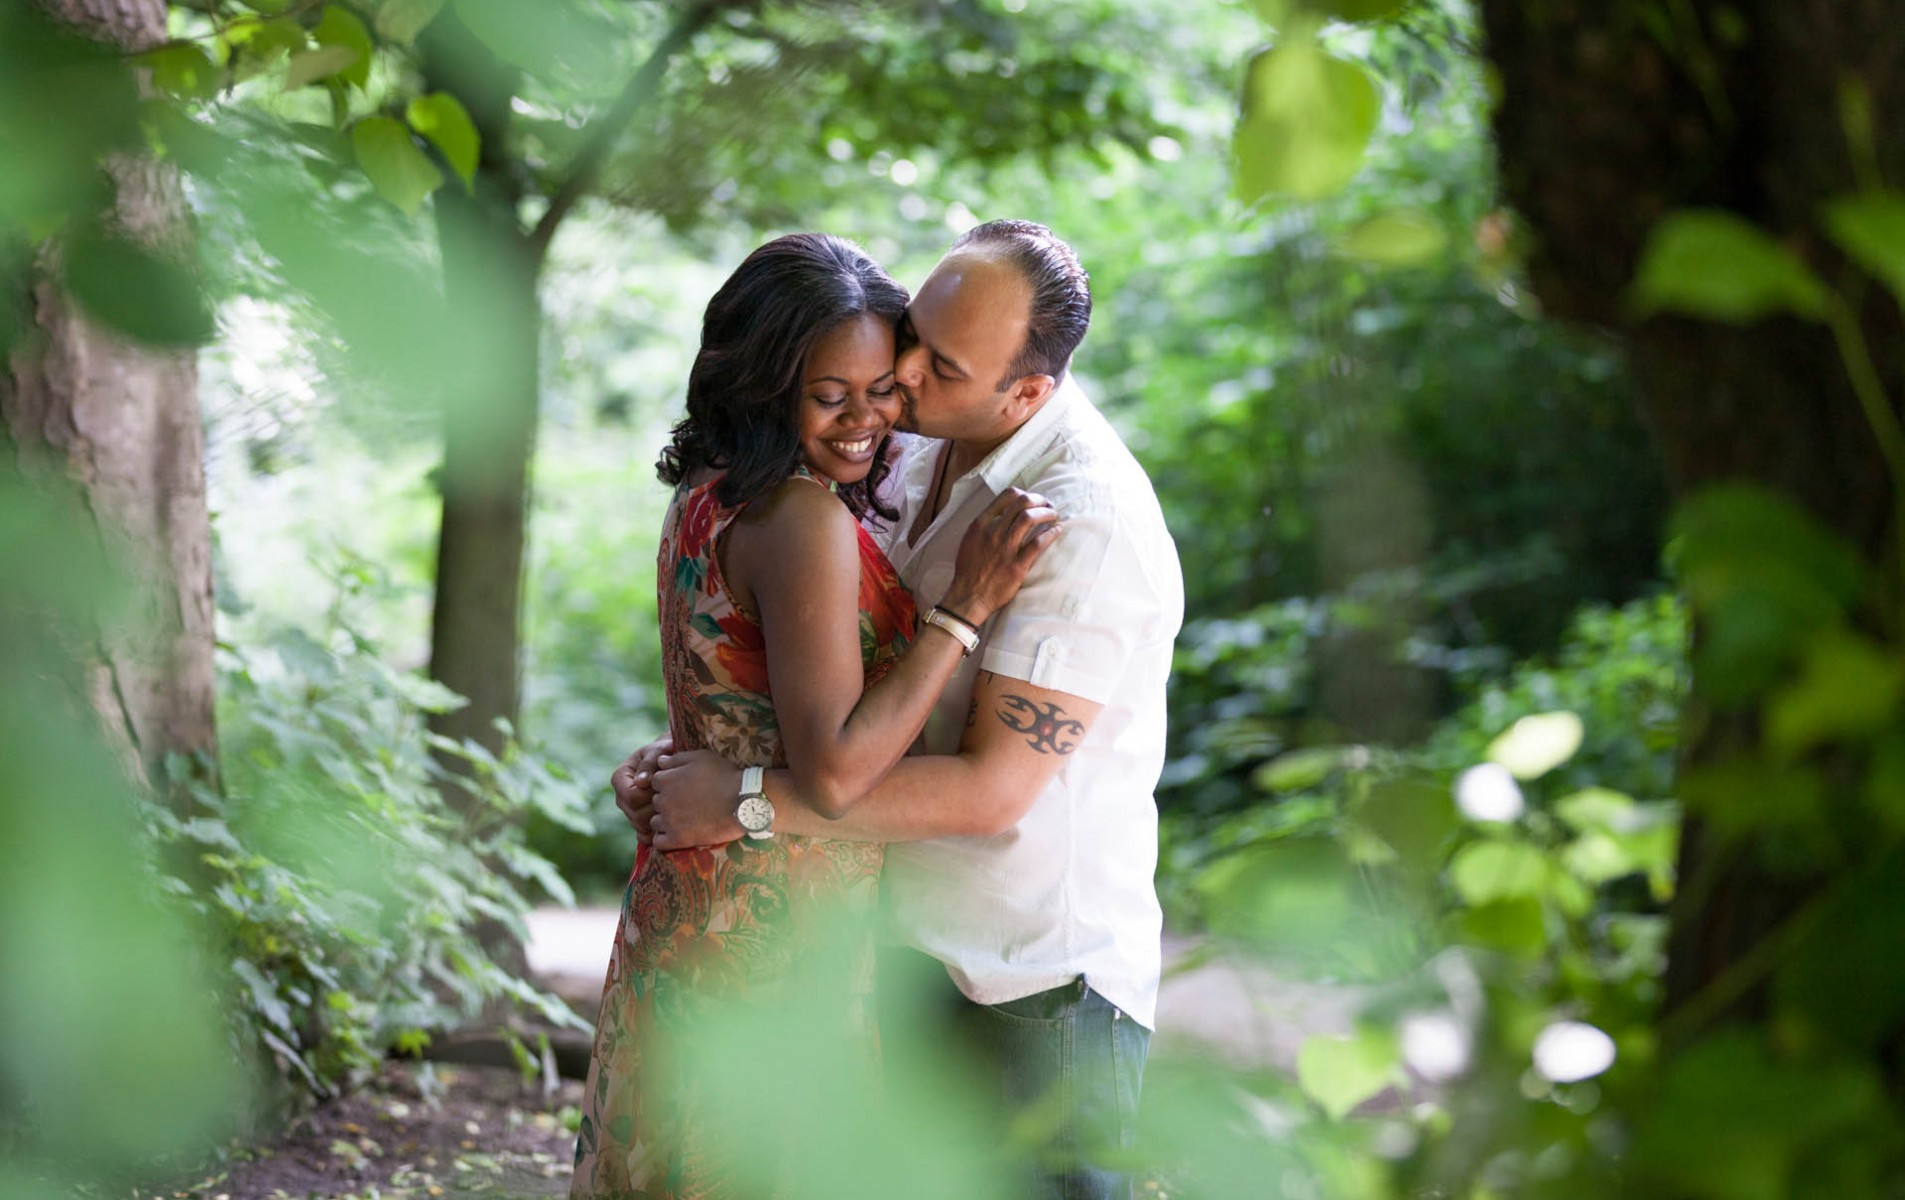 Chiswick House Engagement Shoot - Nene and Arash